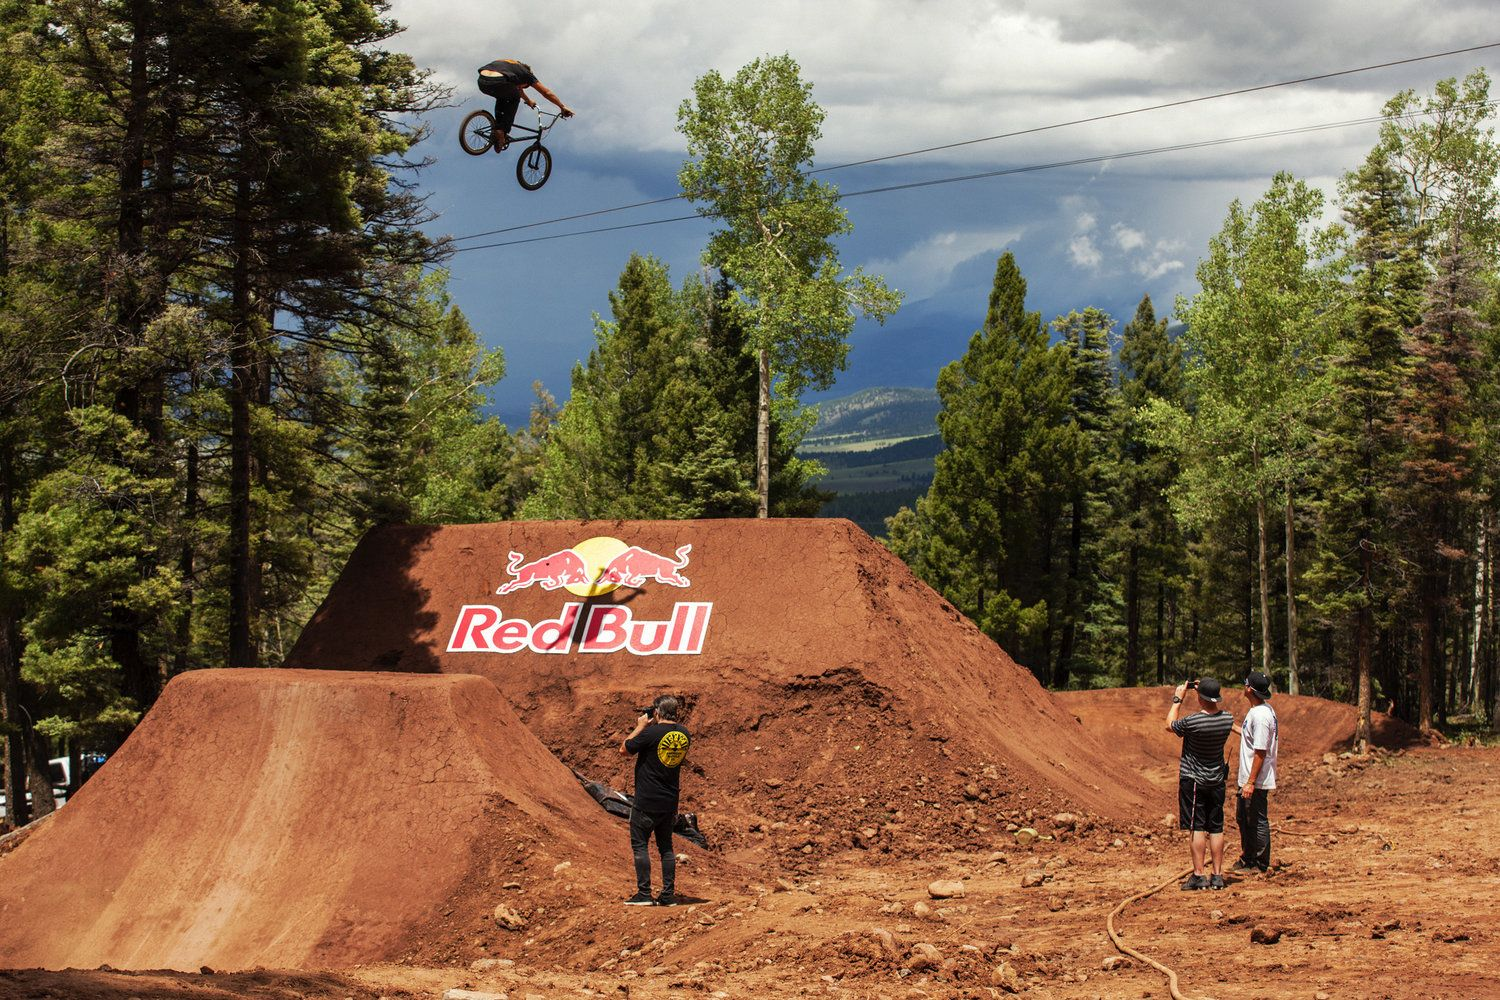 the 2013 red bull dreamline competitors take to the course for one